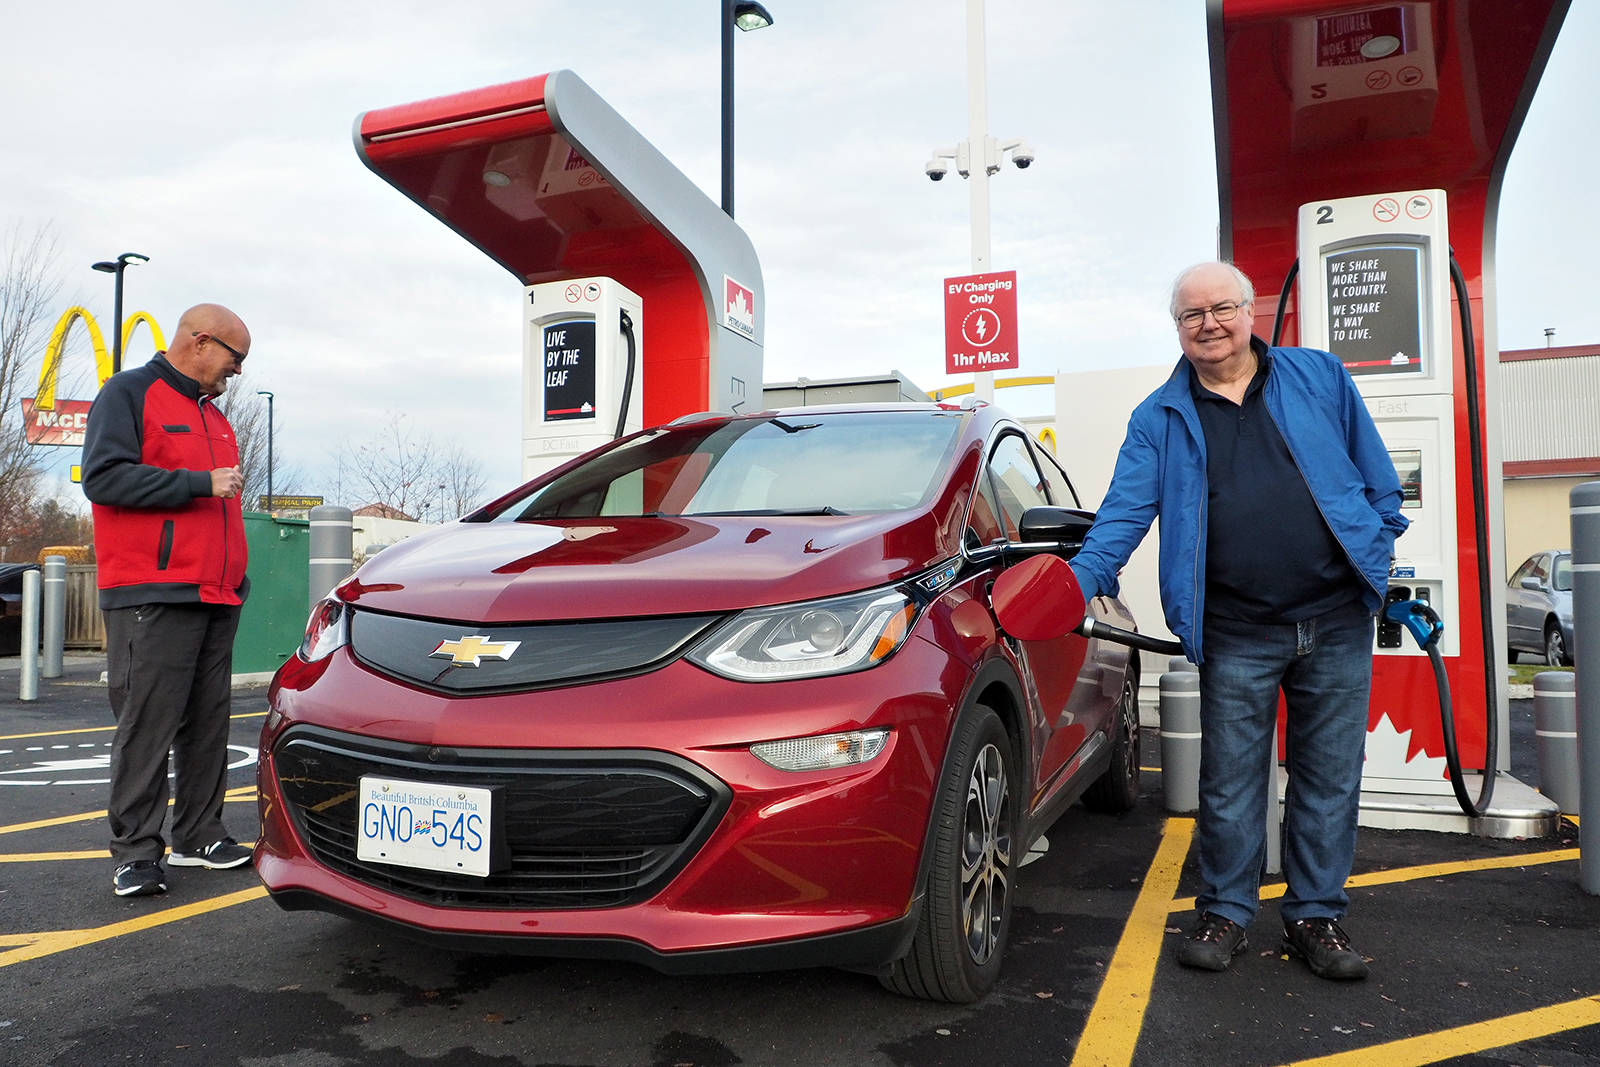 Ed Tkachuk, Nanaimo Petro-Canada station franchise owner, left, checks vehicle clearances from bulwarks installed to protect charging stations, as customer Richard McFadyen tops up the charge on his Chevy Bolt electric car for a trip to the Lower Mainland. CHRIS BUSH/The News Bulletin